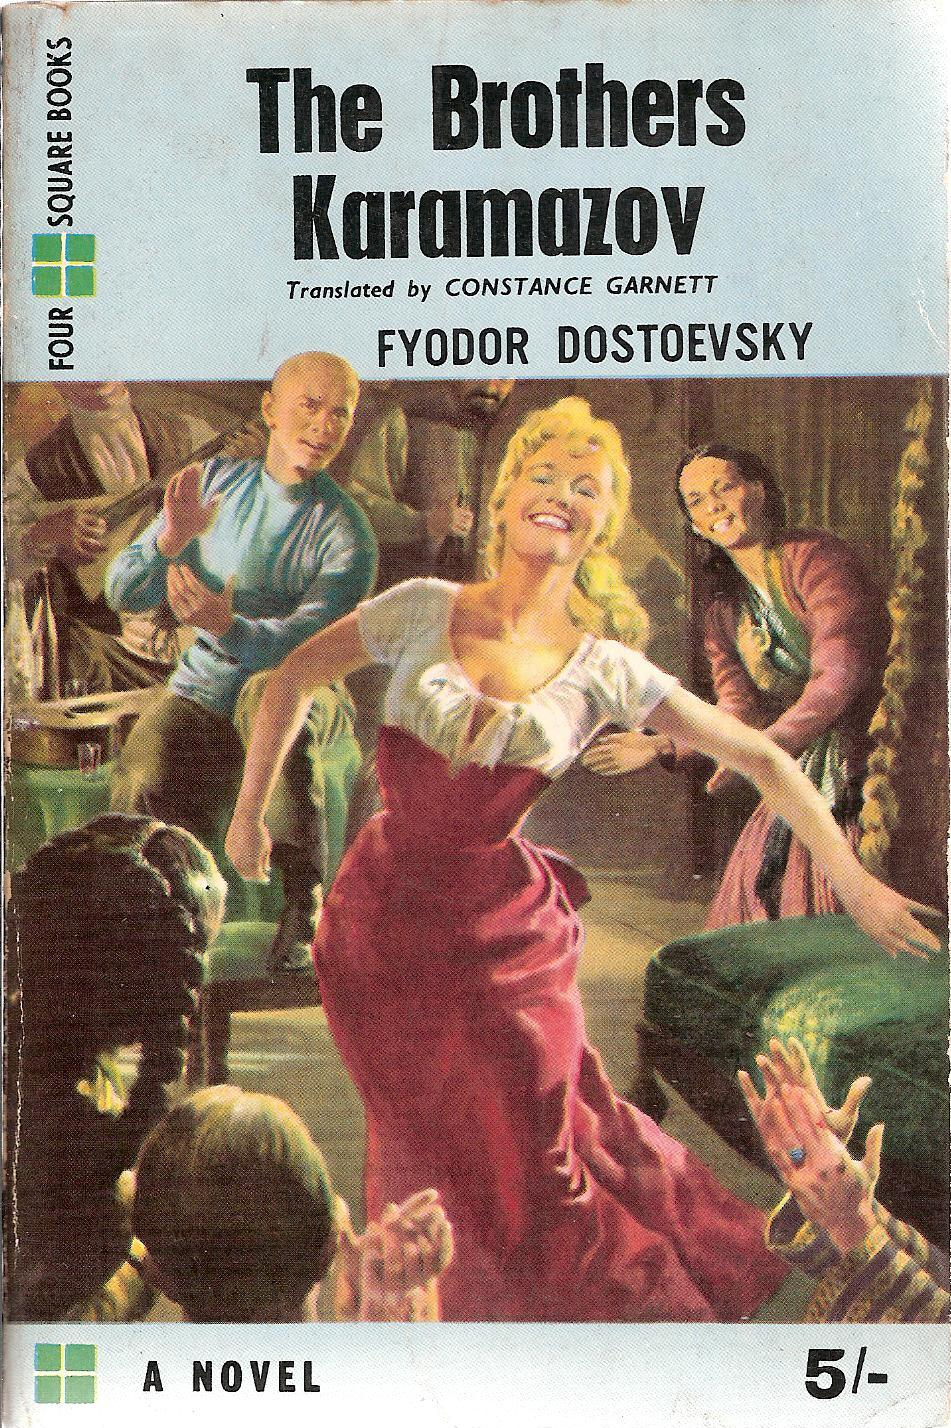 The Brothers Karamazov pulp